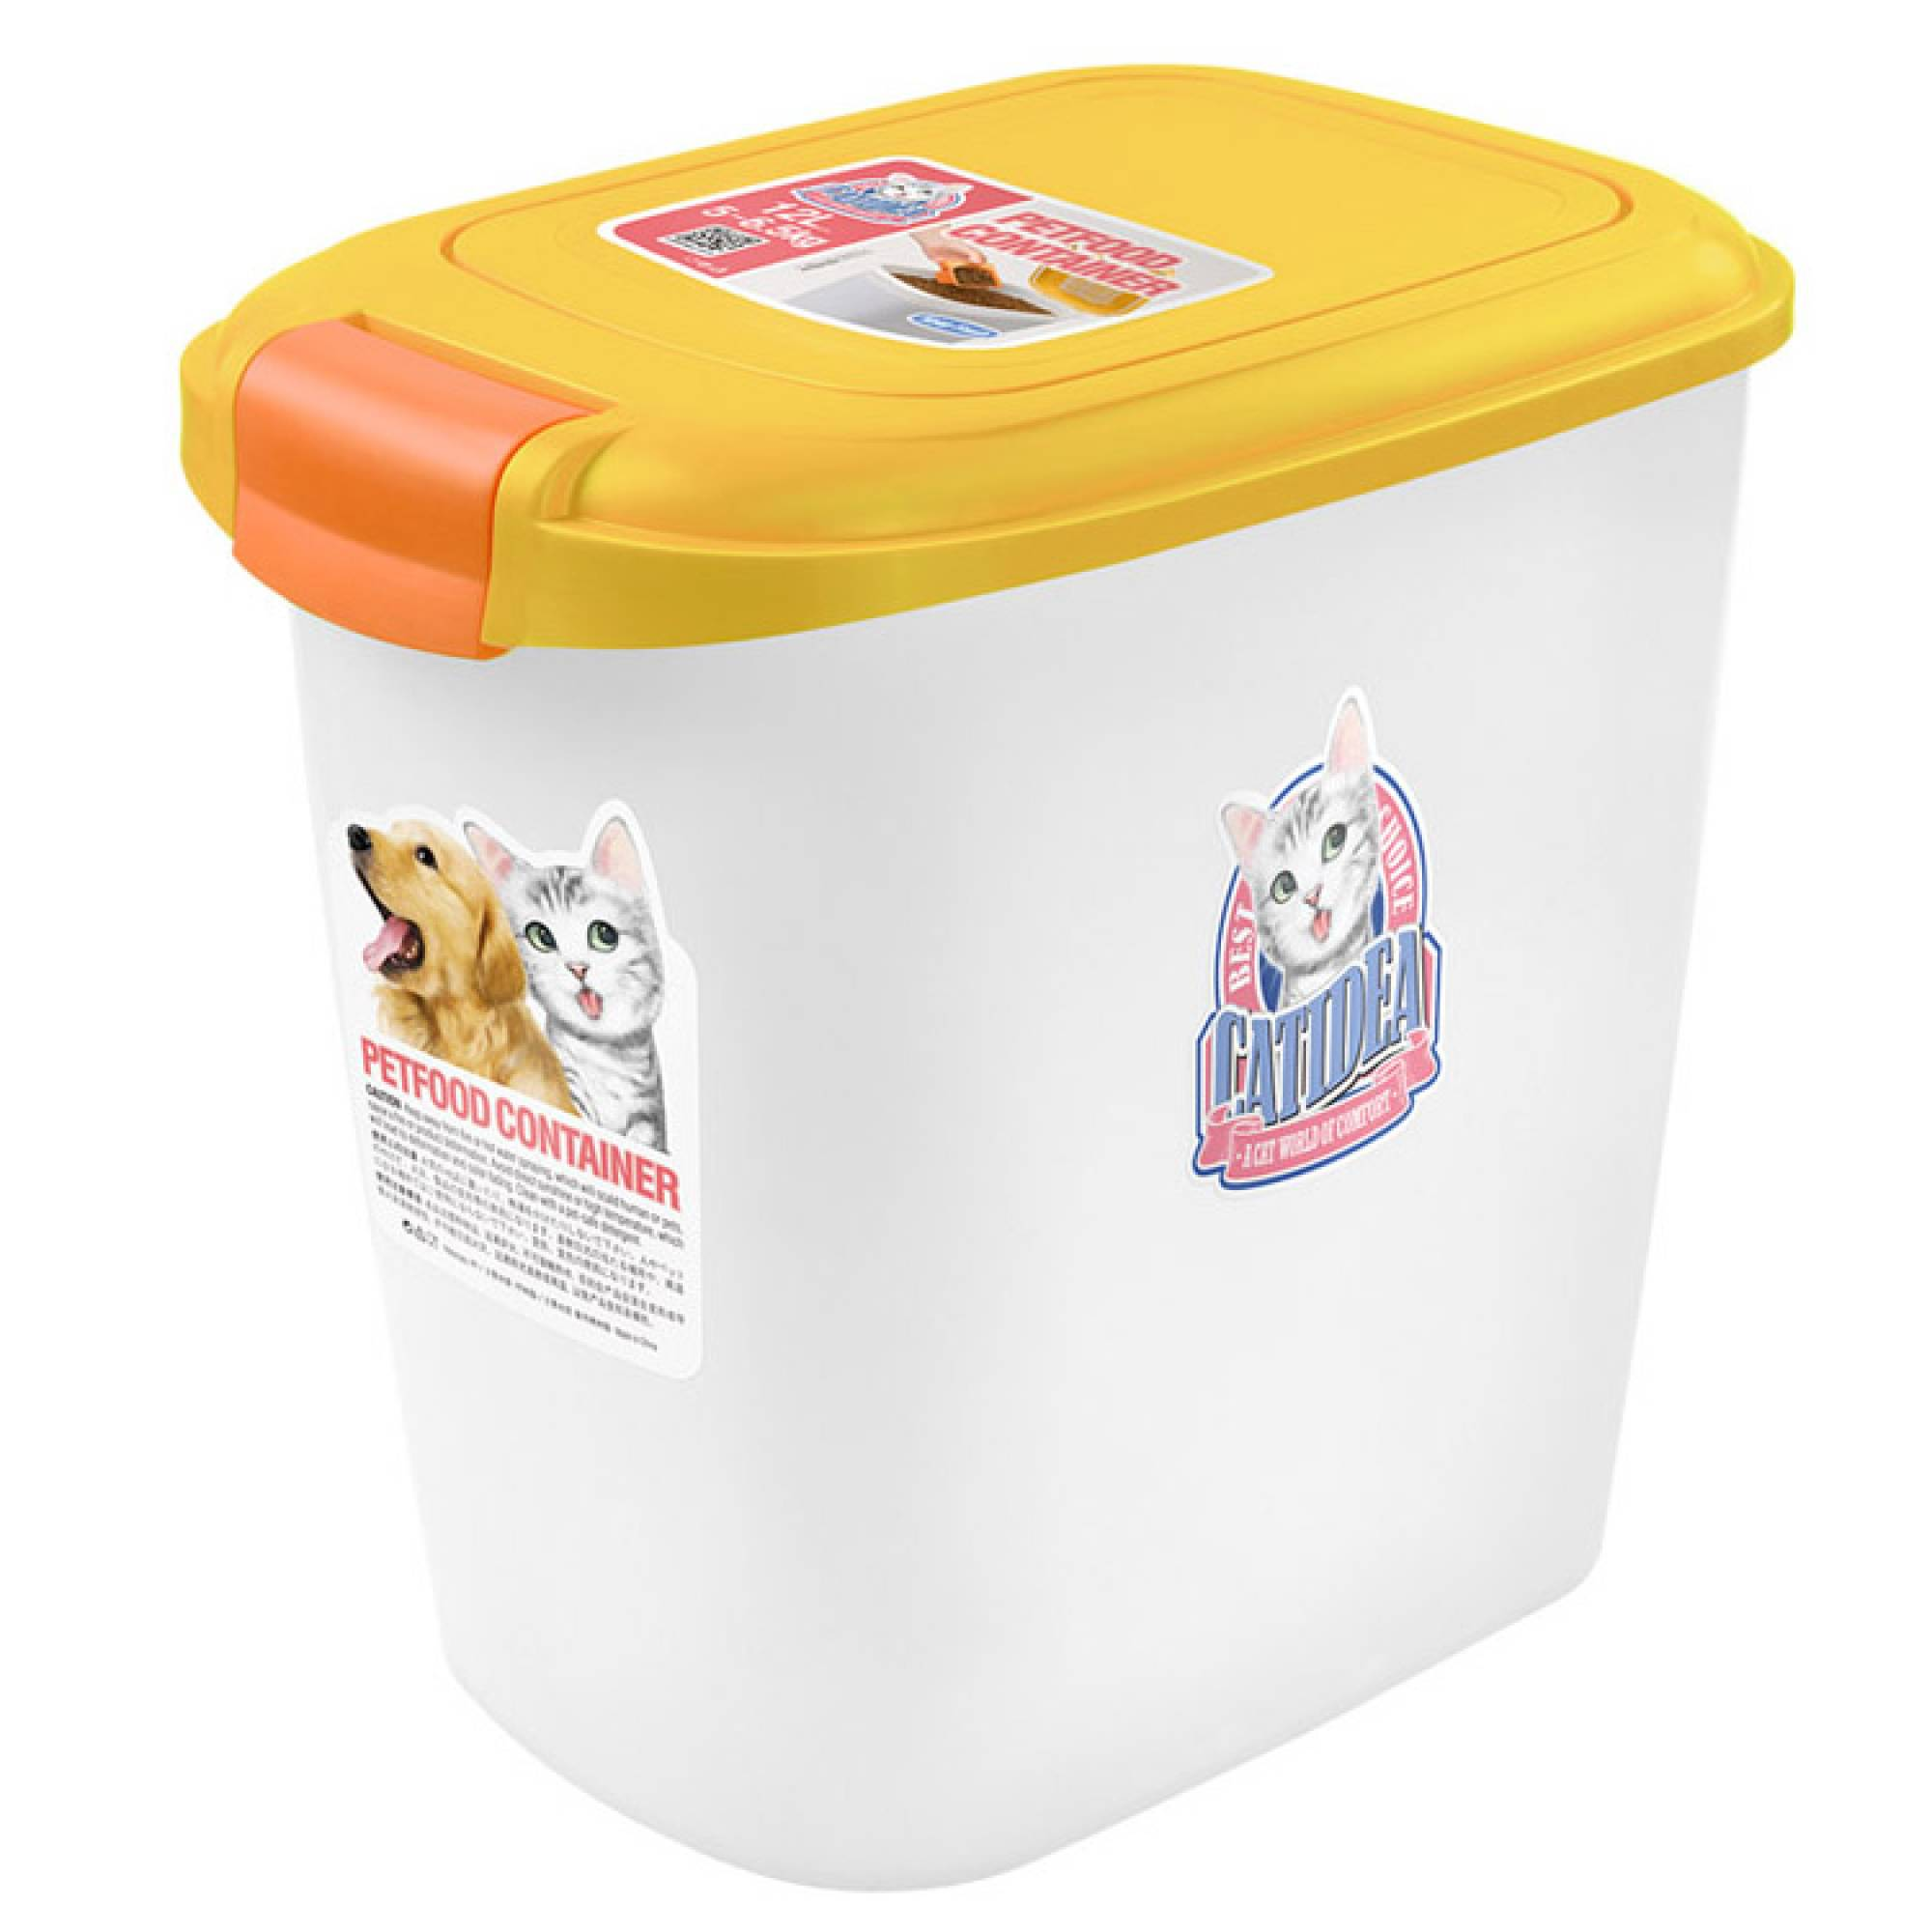 CATIDEA - CF101 Single Open Food Container - 15kg Yellow